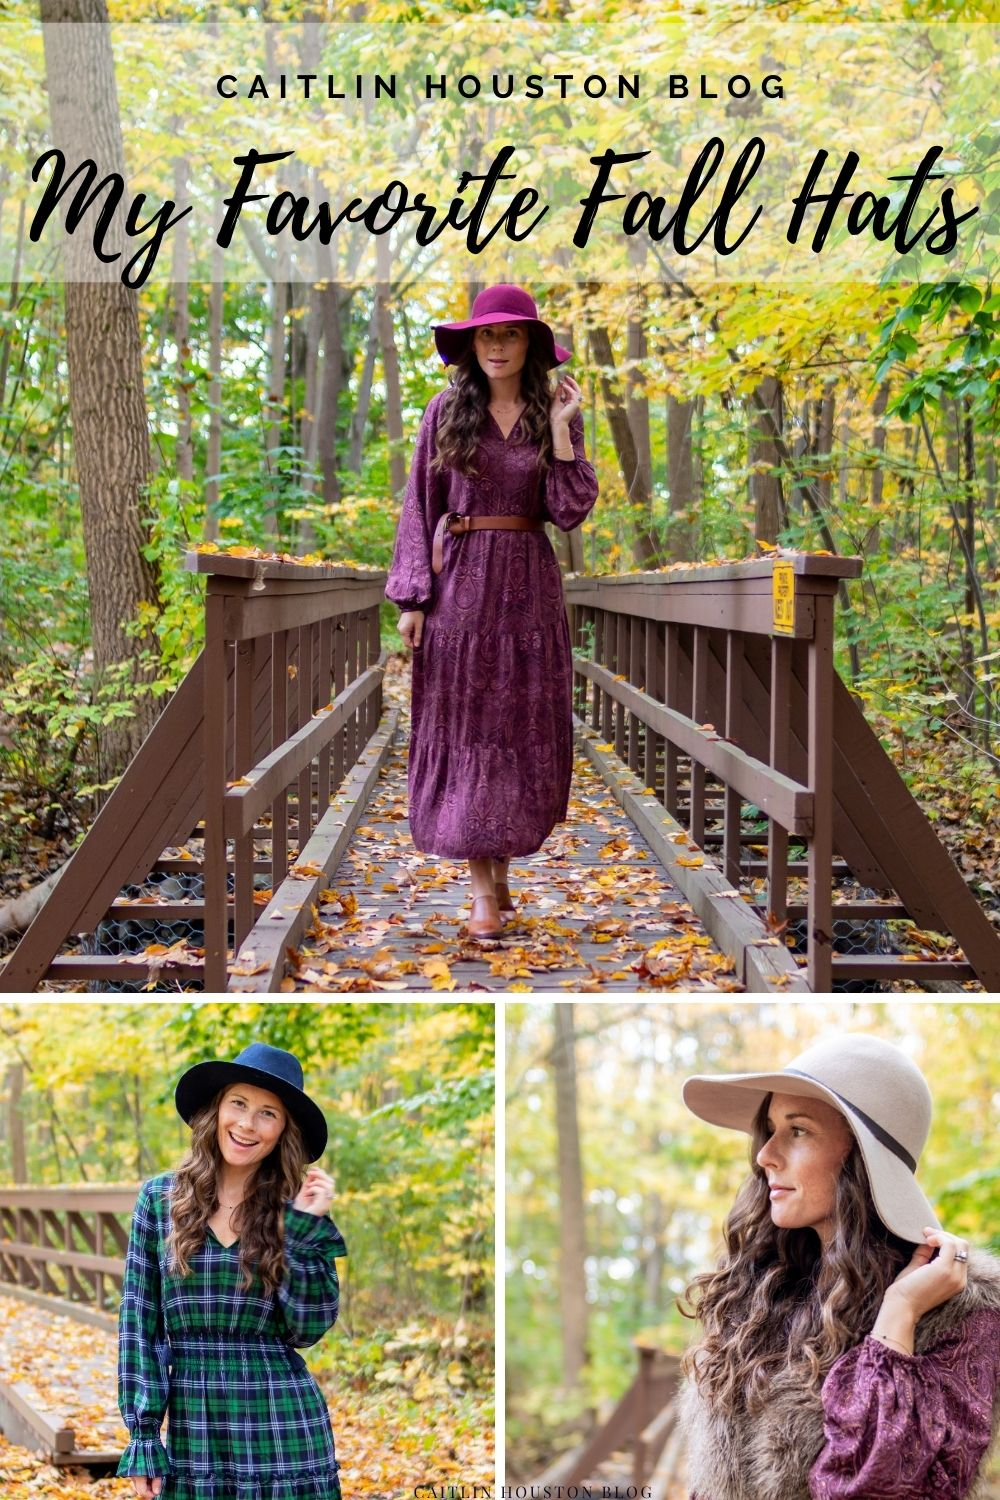 Styling Hats three ways for fall with caitlin houston